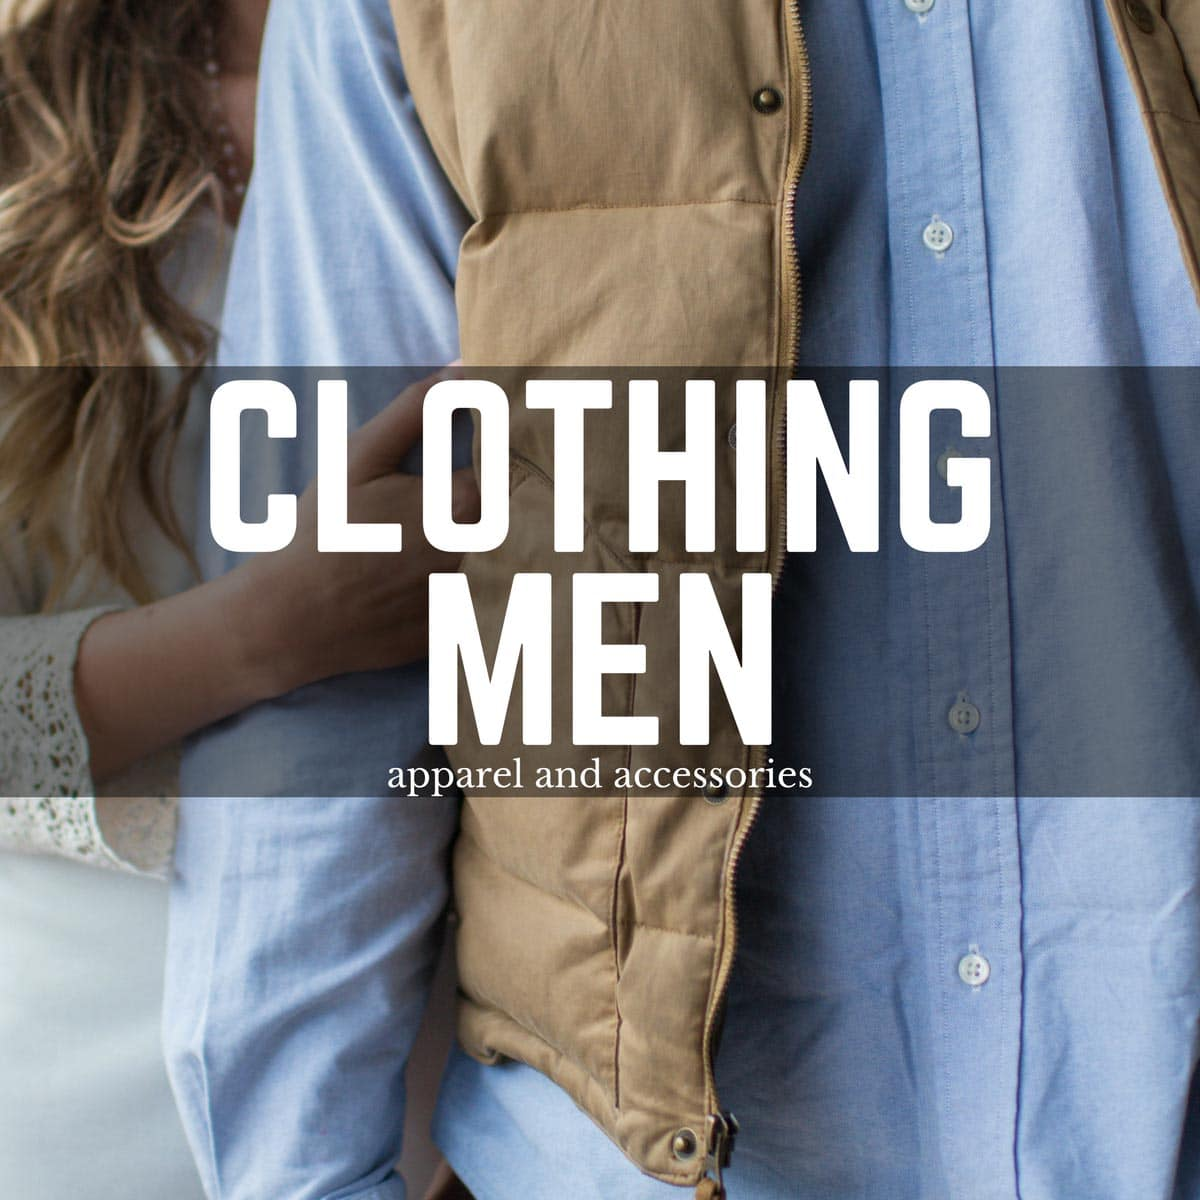 Made in usa Men's clothing, Made in usa Men's jeans, Made in usa Men's shoes, Made in usa Men's underwear, Made in usa Men's ties, Made in usa Men's belts, Made in usa Men's socks, Made in usa Men's wallets, Made in usa Men's bags, american made men's jeans, american made men's belts, american made men's shoes, american made men's wallets, american made men's bags, american made men's socks, american made men's suits, made in usa suits, made in usa products list, made in america products list, american made products list